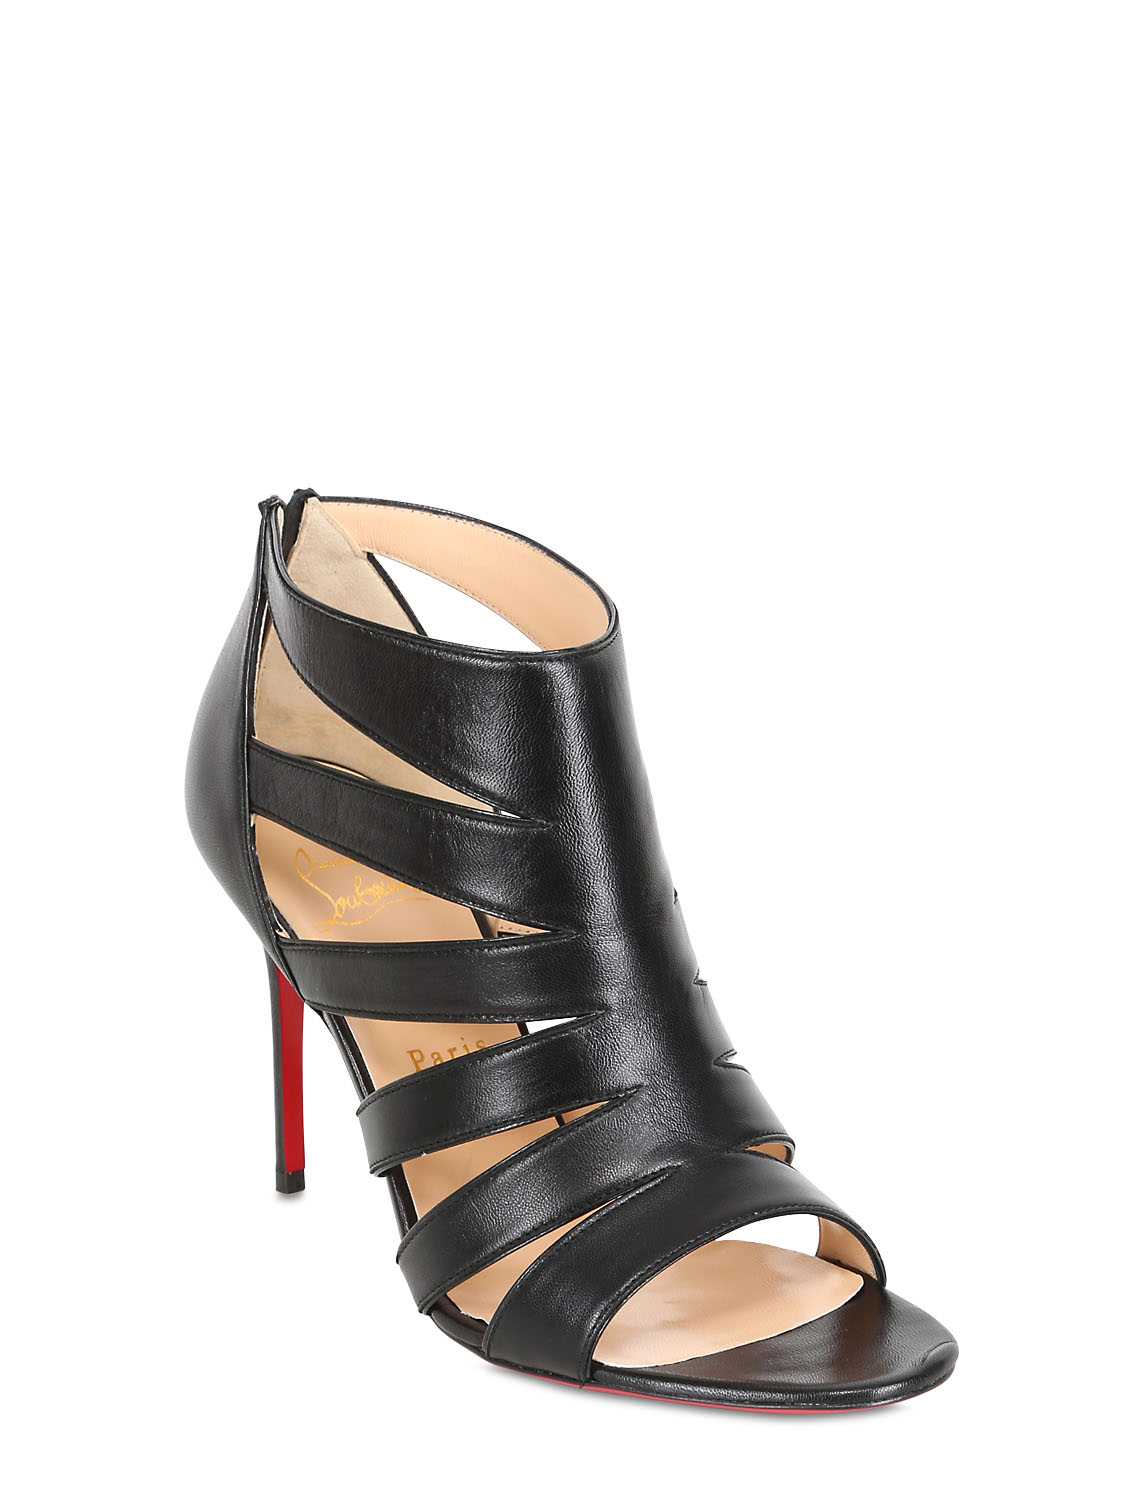 christian louboutin platform cage sandals Black leather stacked ...